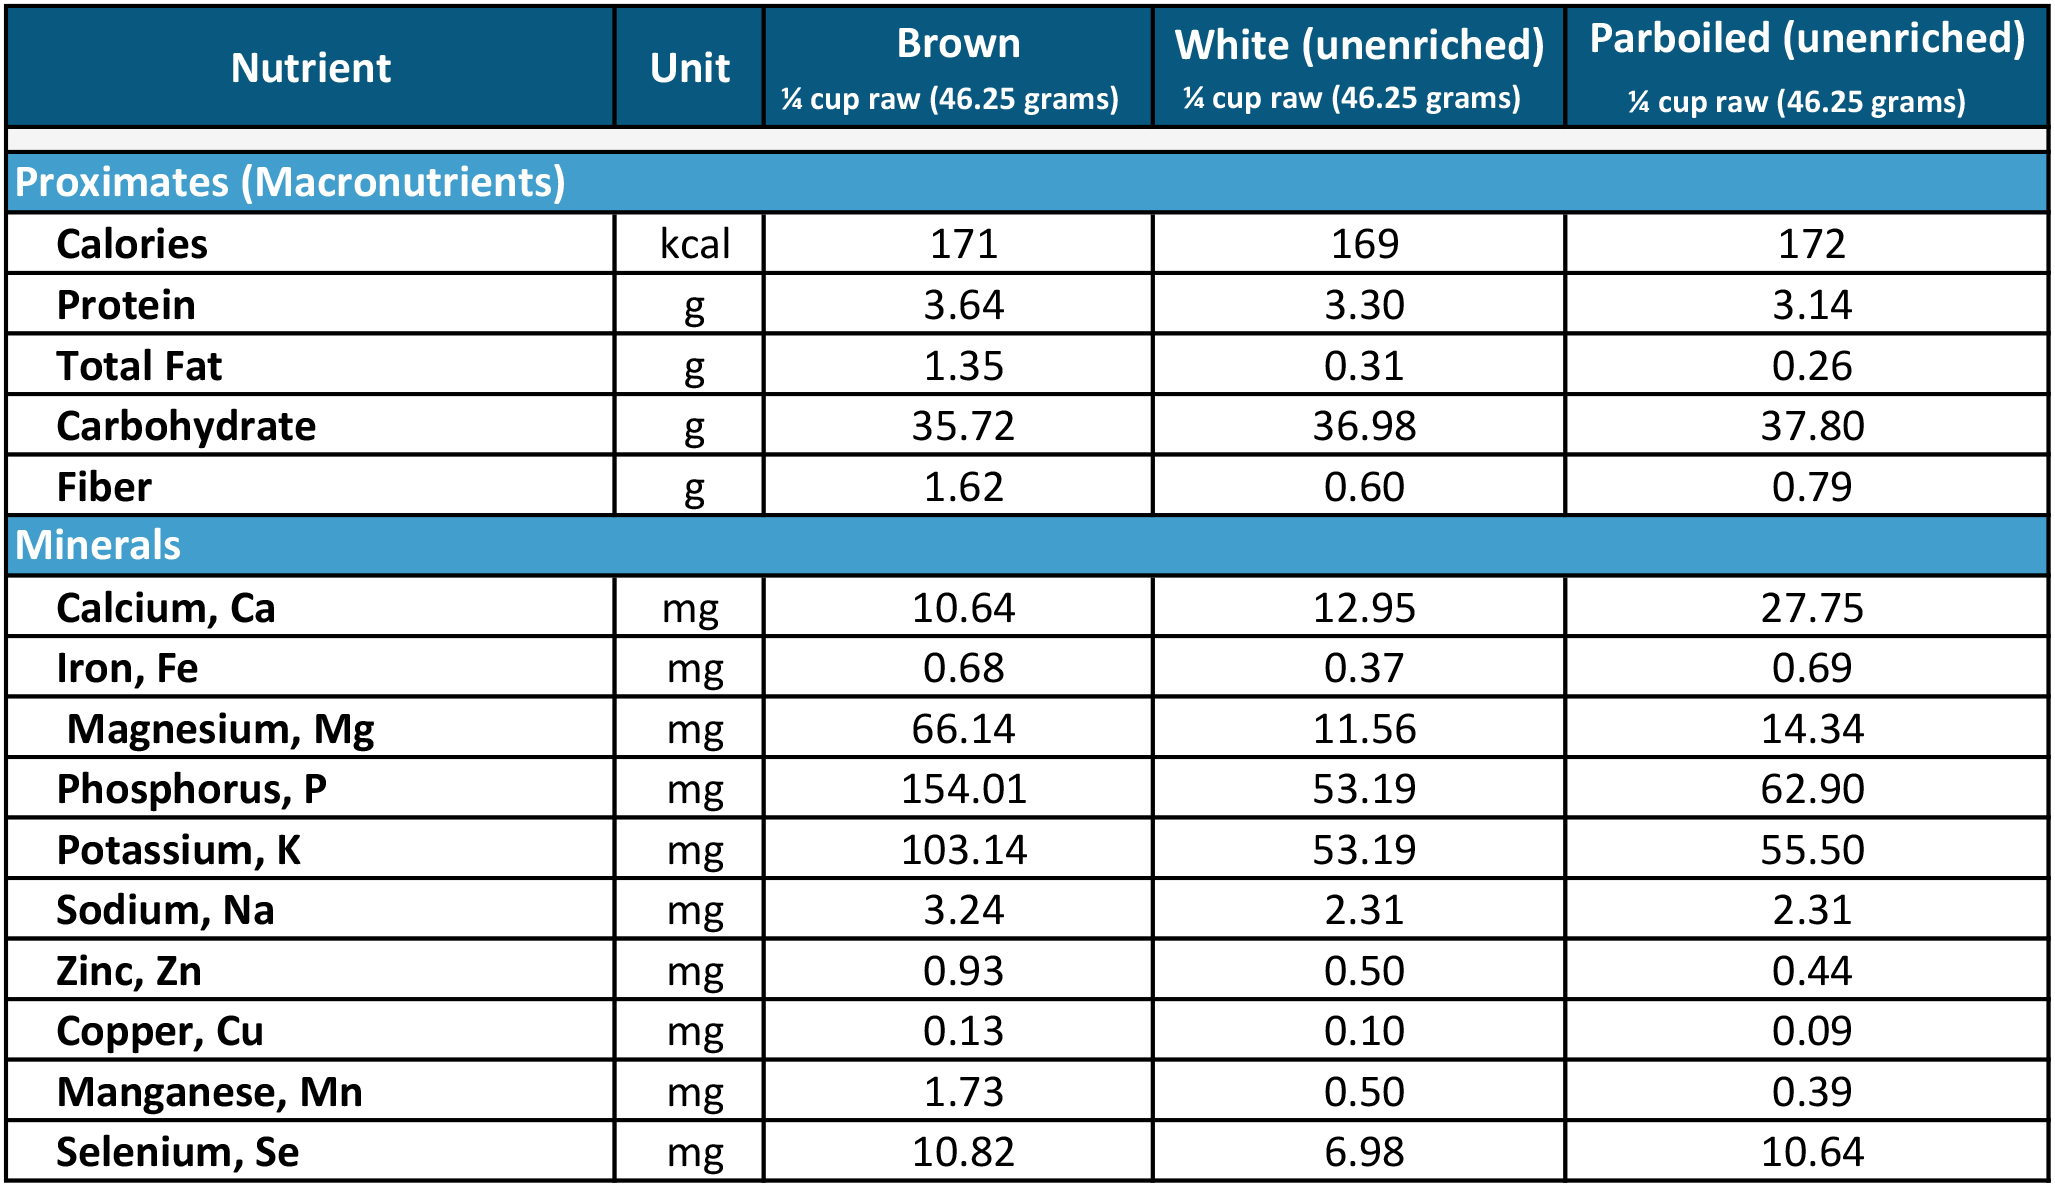 This is a chart that compares the nutrients of brown rice, unenriched white rice, and unenriched parboiled rice.